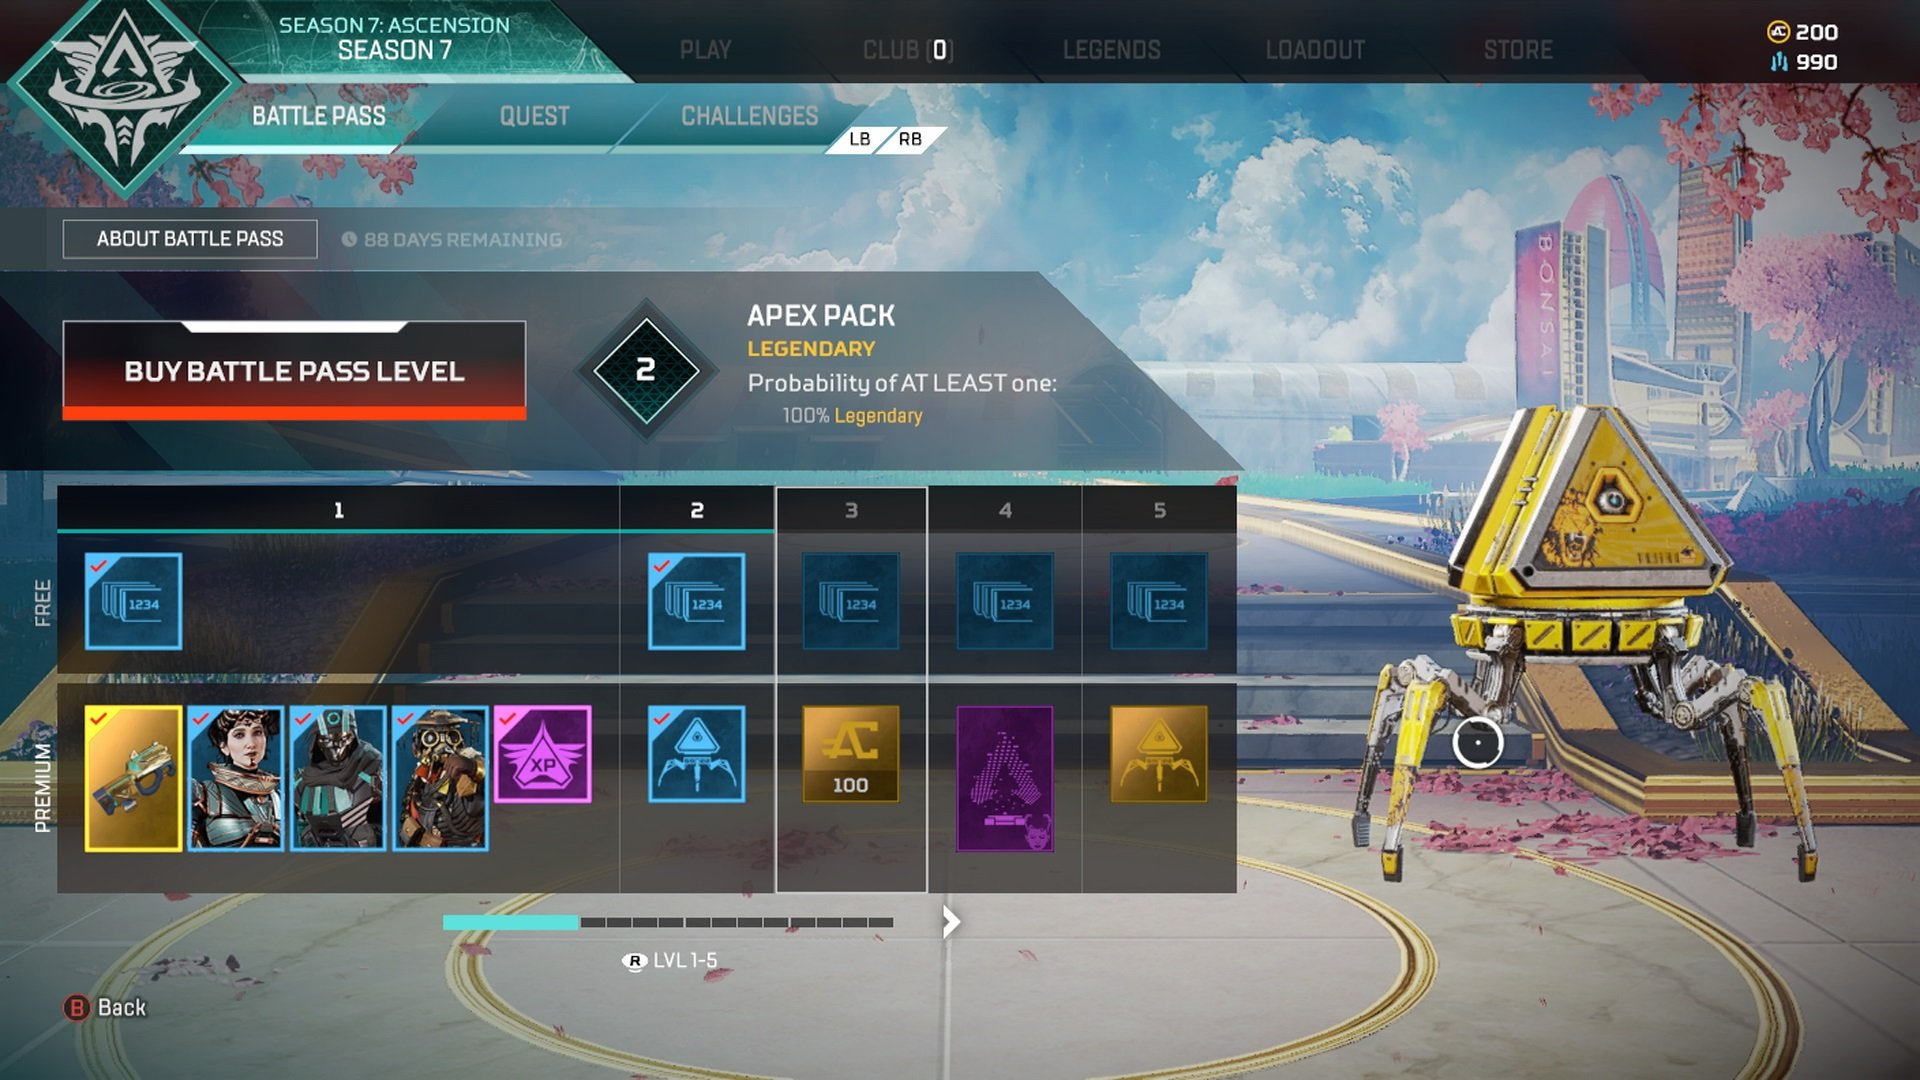 The Apex Legends Season 7 battle pass takes quite a lot of effort to level up, © u/GrubbyLilPaws